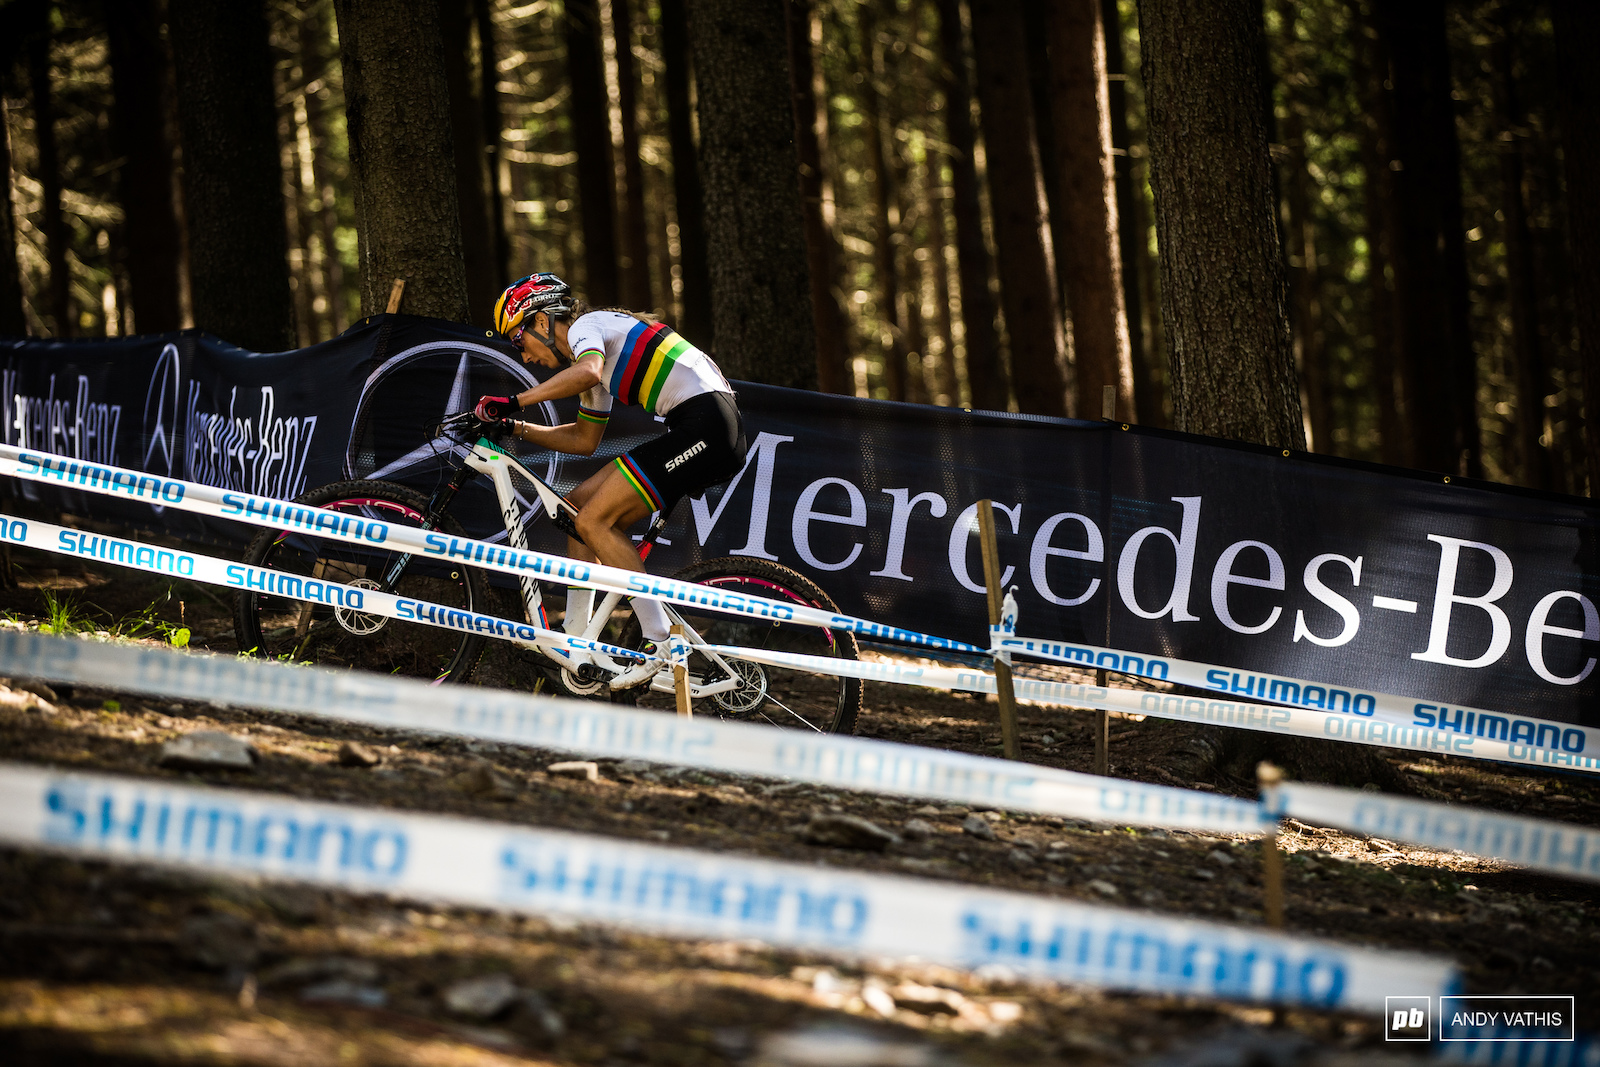 Pauline Ferrand Prevot showed us all why she earned the stripes today. She got on the horse and never looked back.